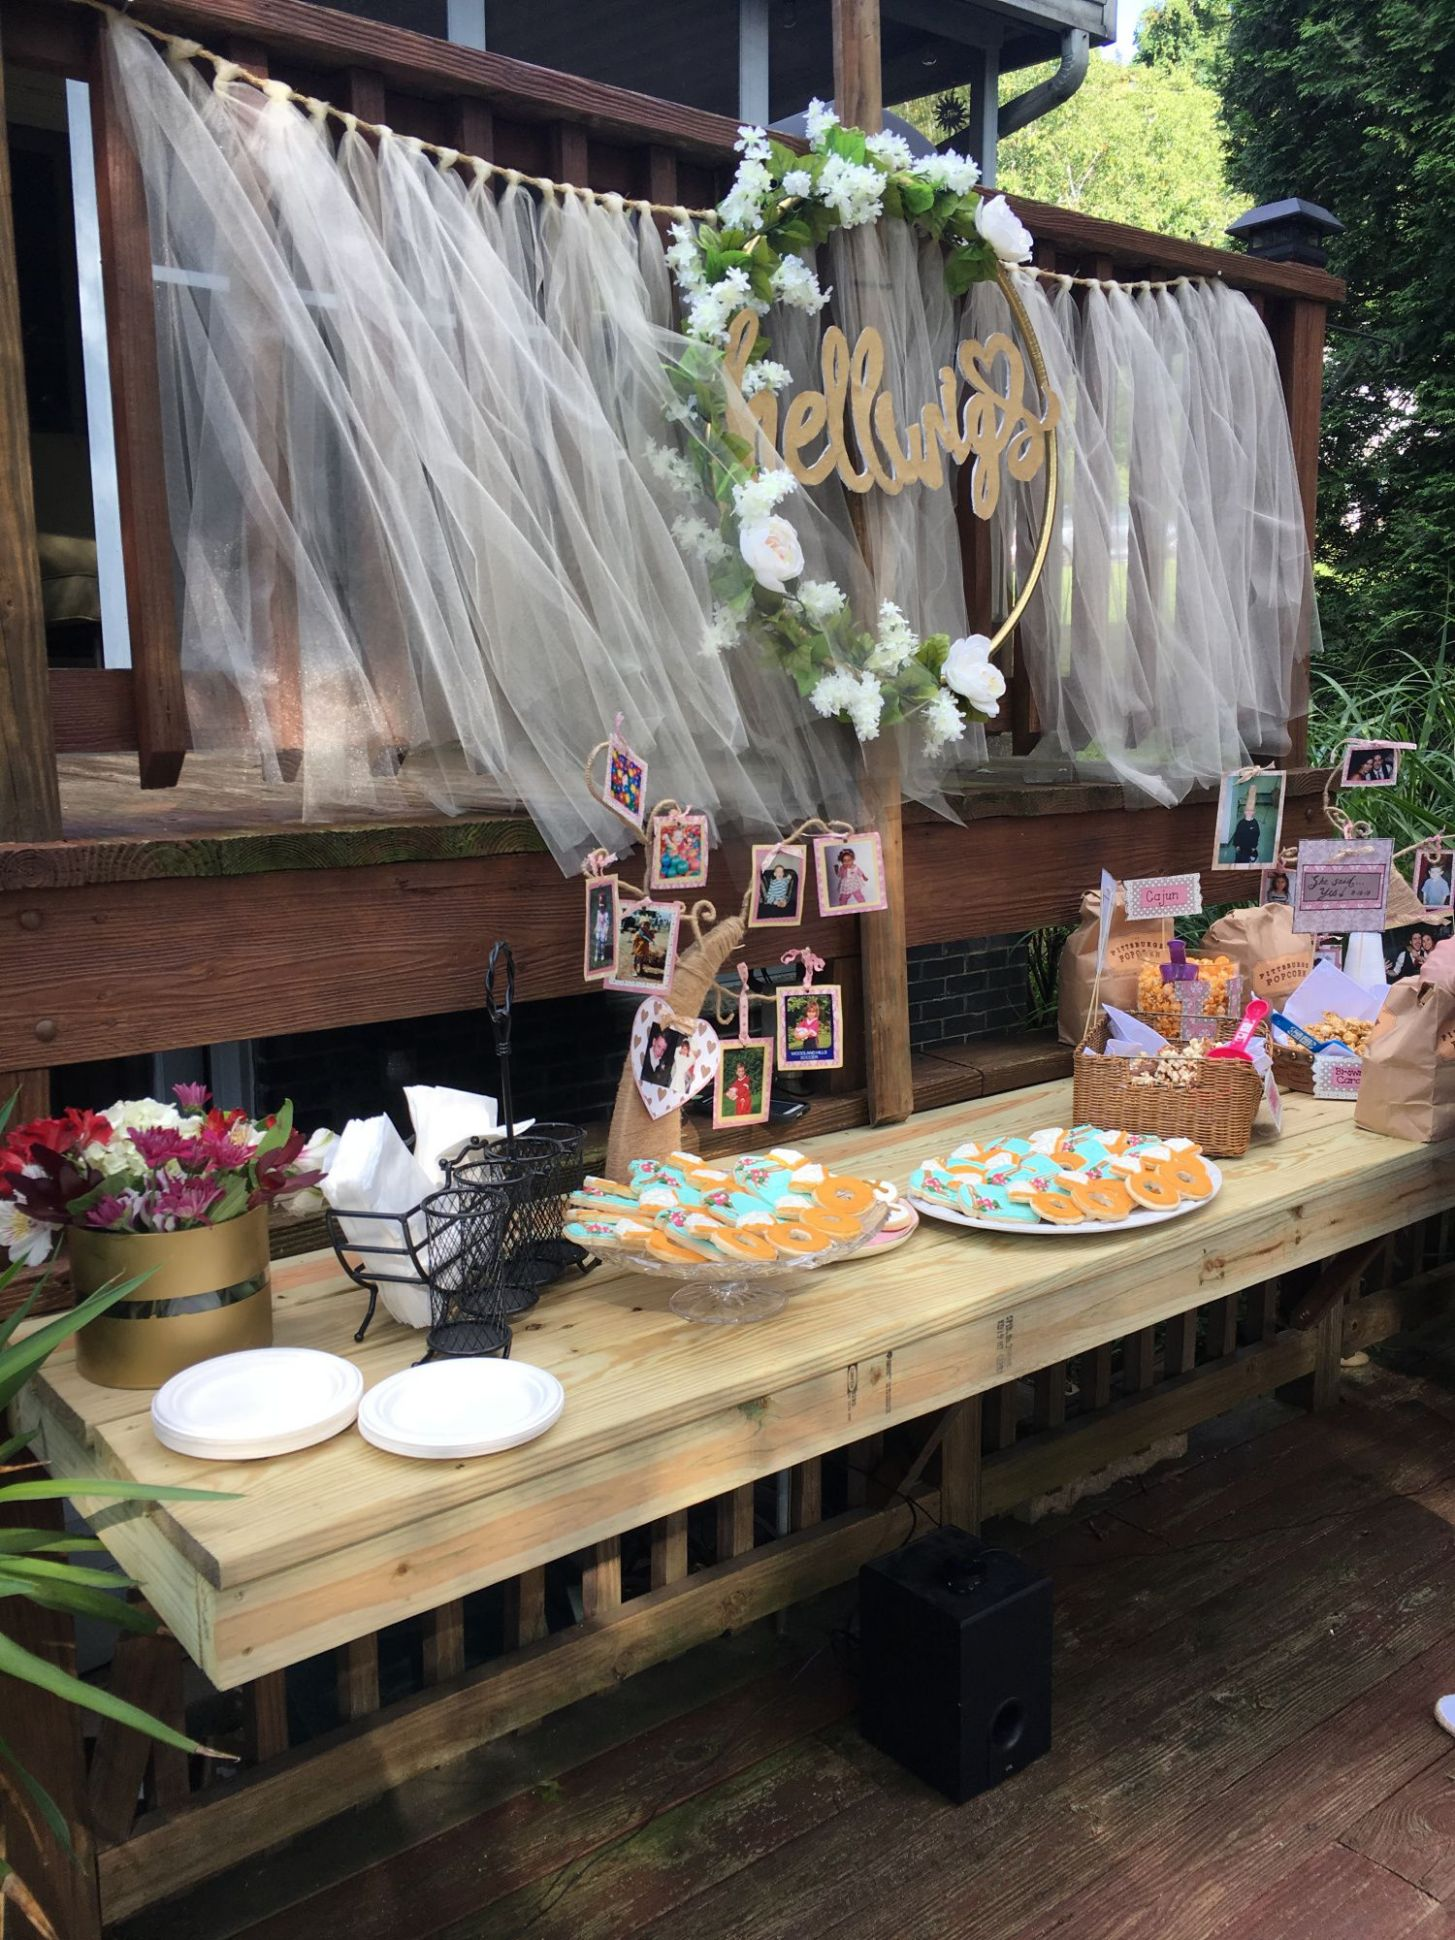 Awesome Backyard Engagement Party Decoration Ideas - owl-freshome - backyard engagement ideas